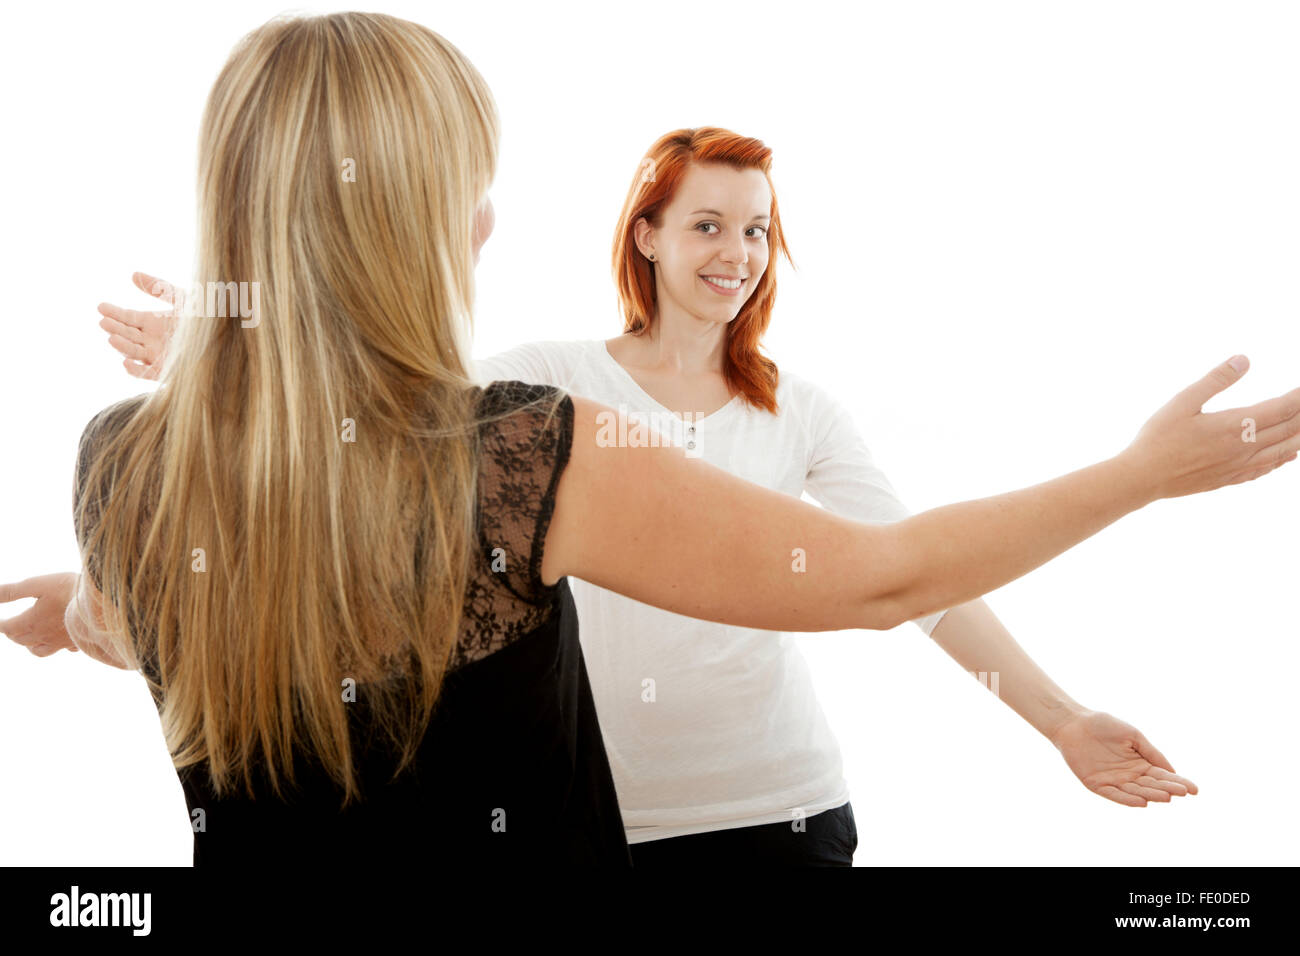 young beautiful red and blond haired girls in front of white background - Stock Image